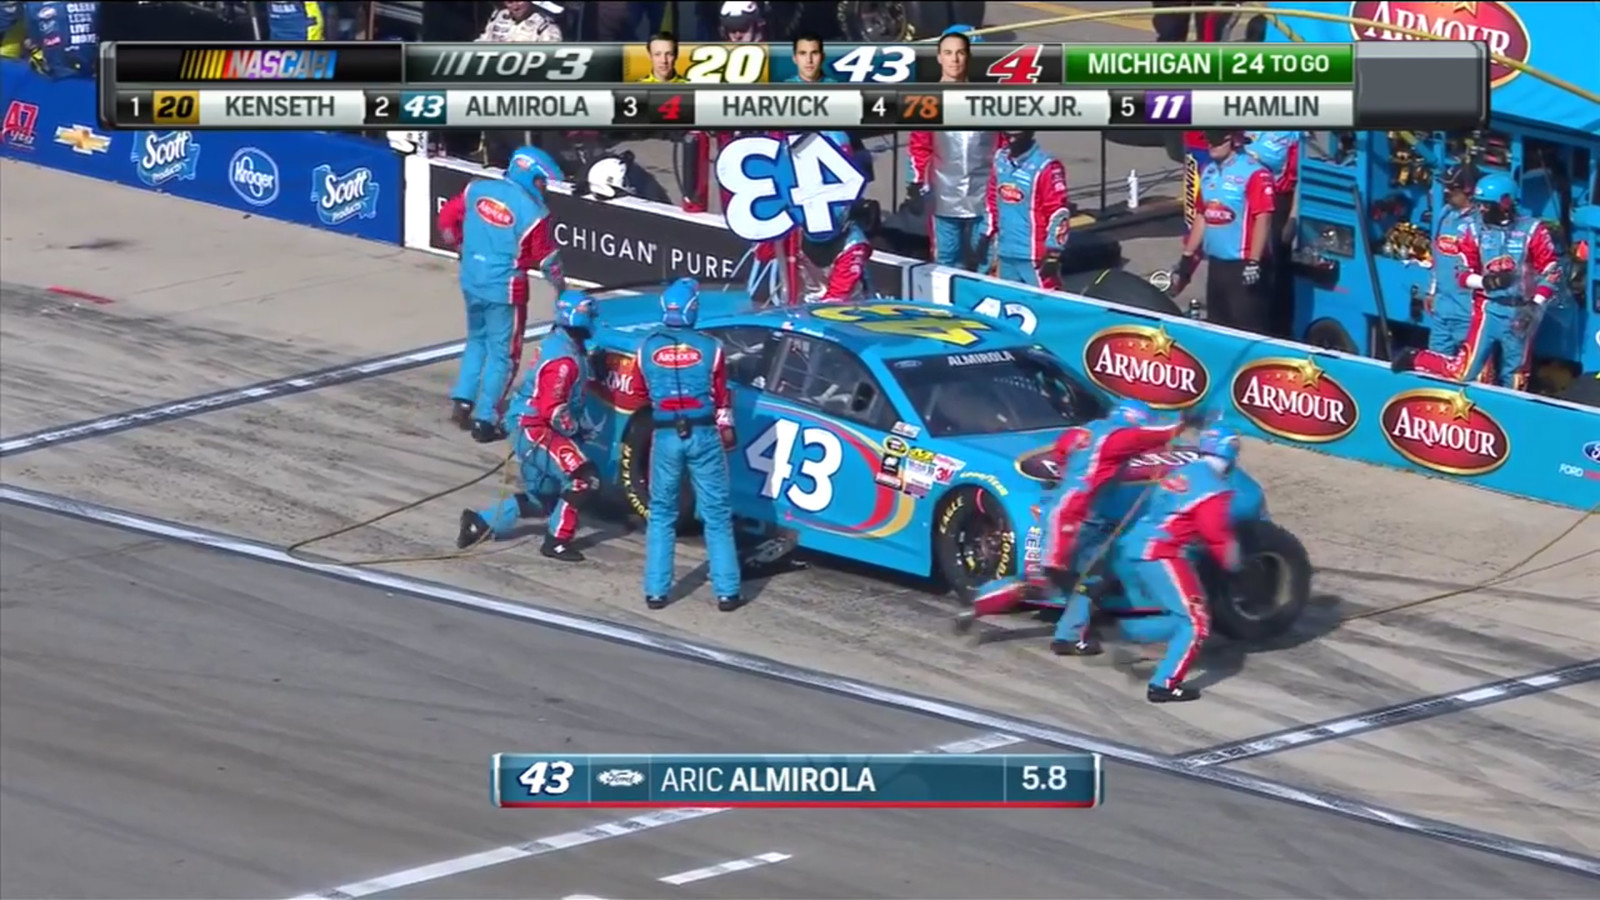 Almirola's crew hard at work pitting the #43 Armour Ford Fusion. Screen capture from NBC's live broadcast of the Pure Michigan 400 on August 16th, 2015. (Credit: NBC Sports)